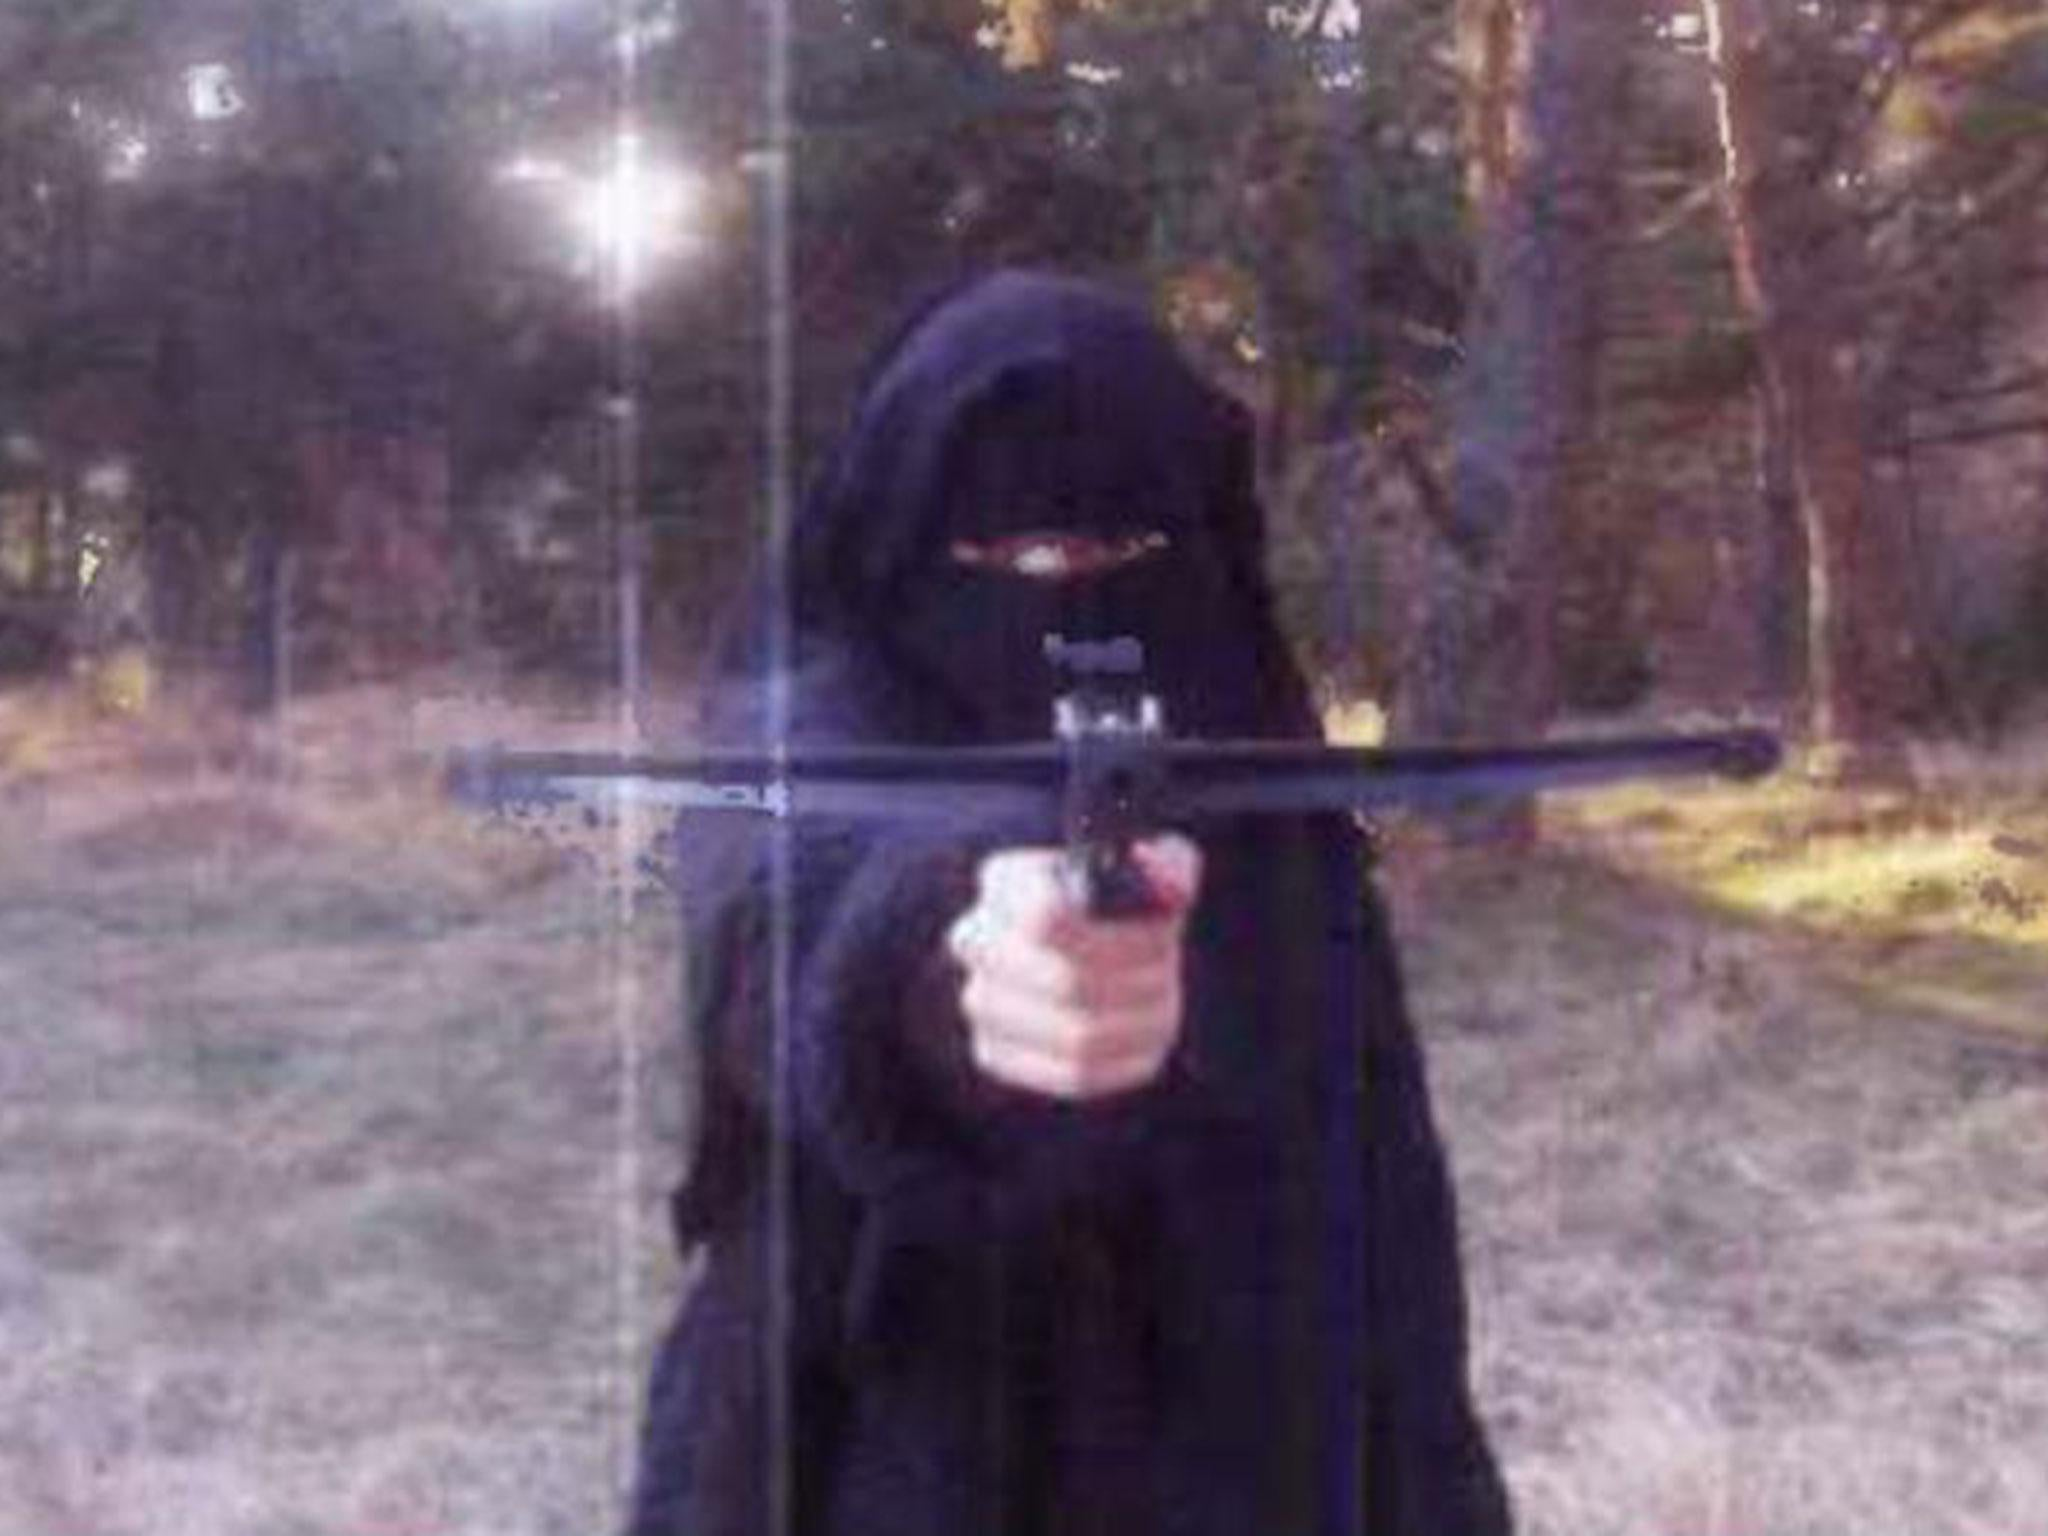 Isis is calling on women to fight and launch terror attacks for the first time